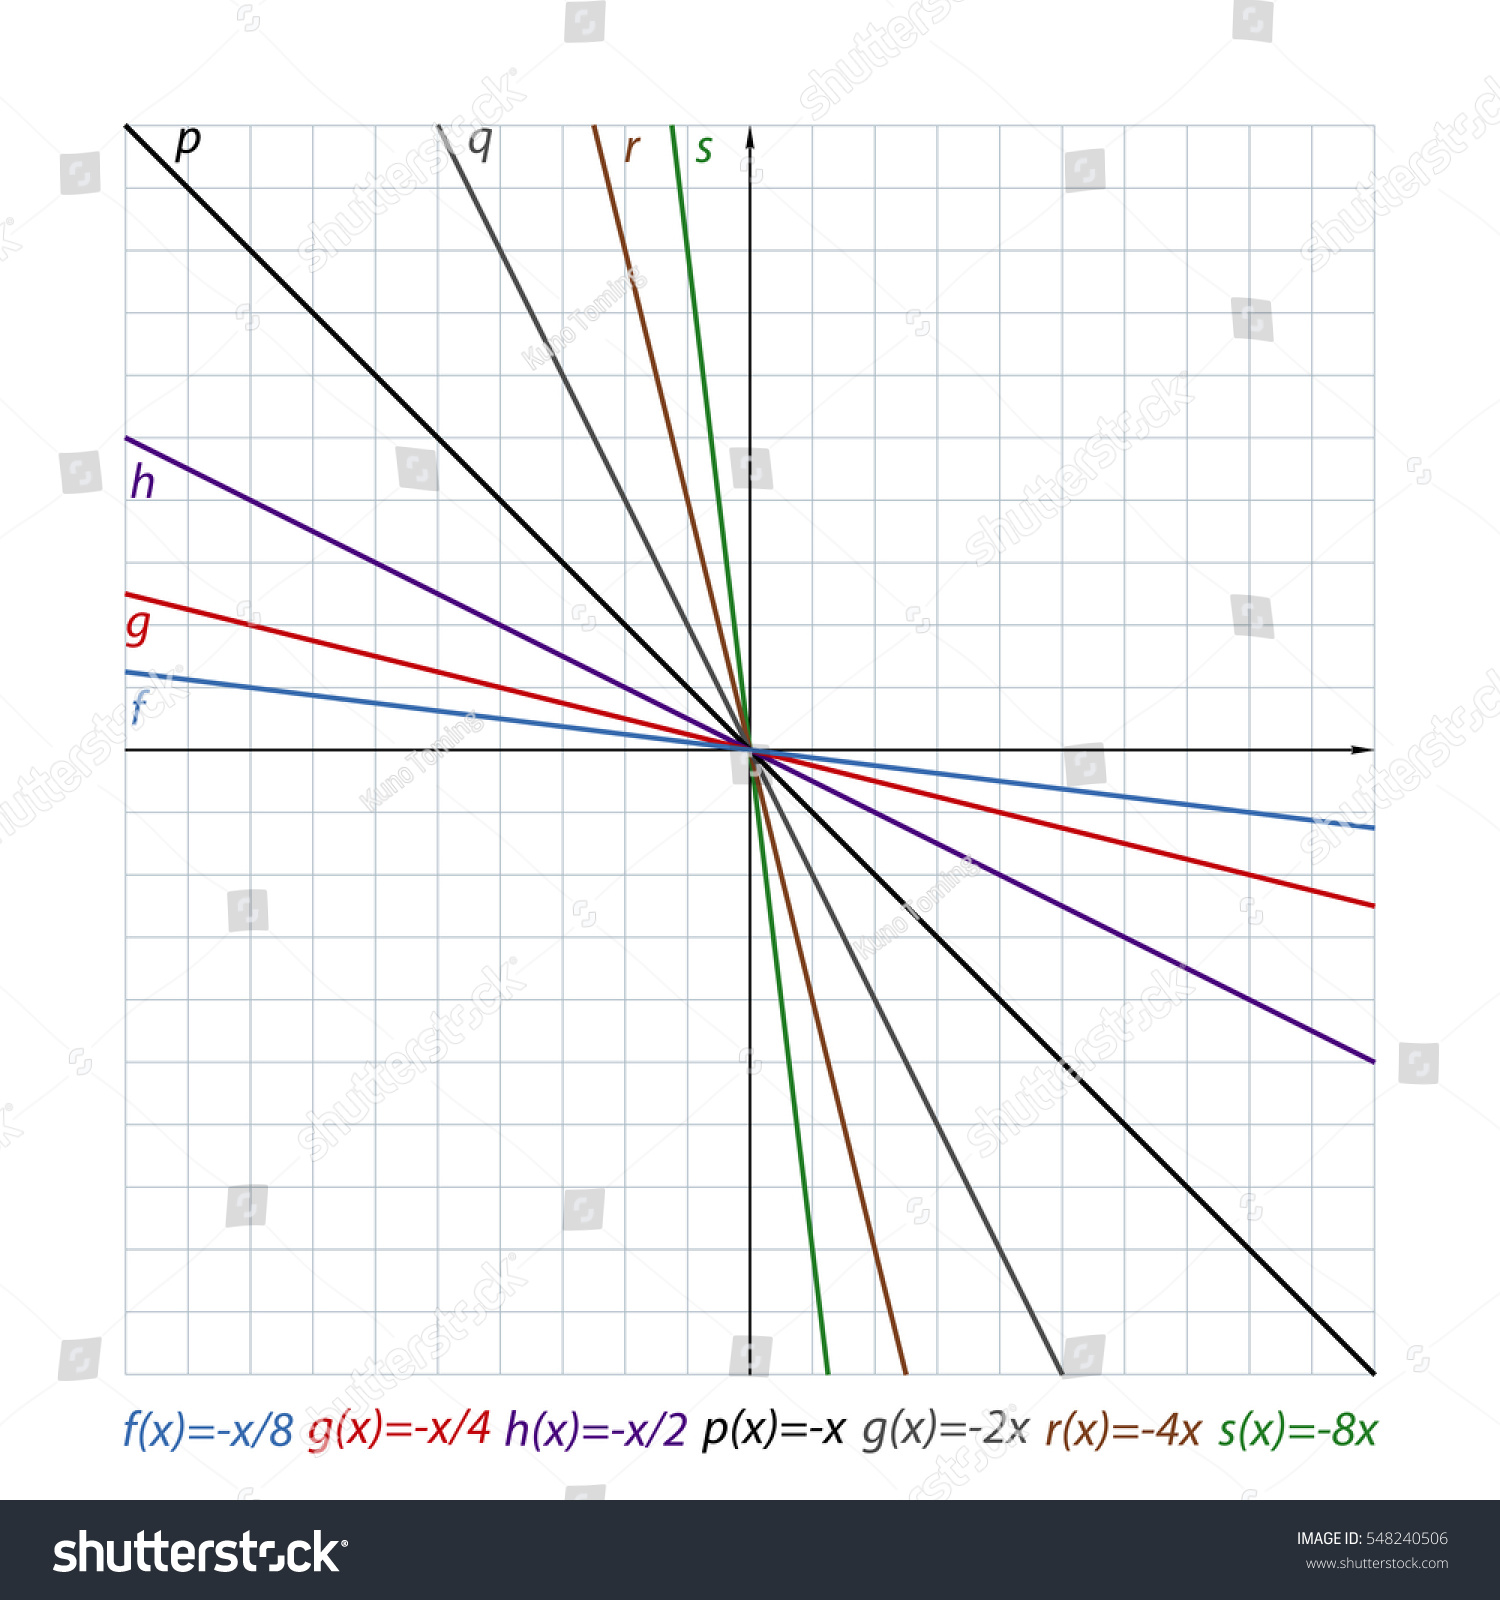 worksheet Math Aids Graphing printable coordinate plane measurement practice worksheet systems math aids free factor worksheets stock vector illustration shows the location of the